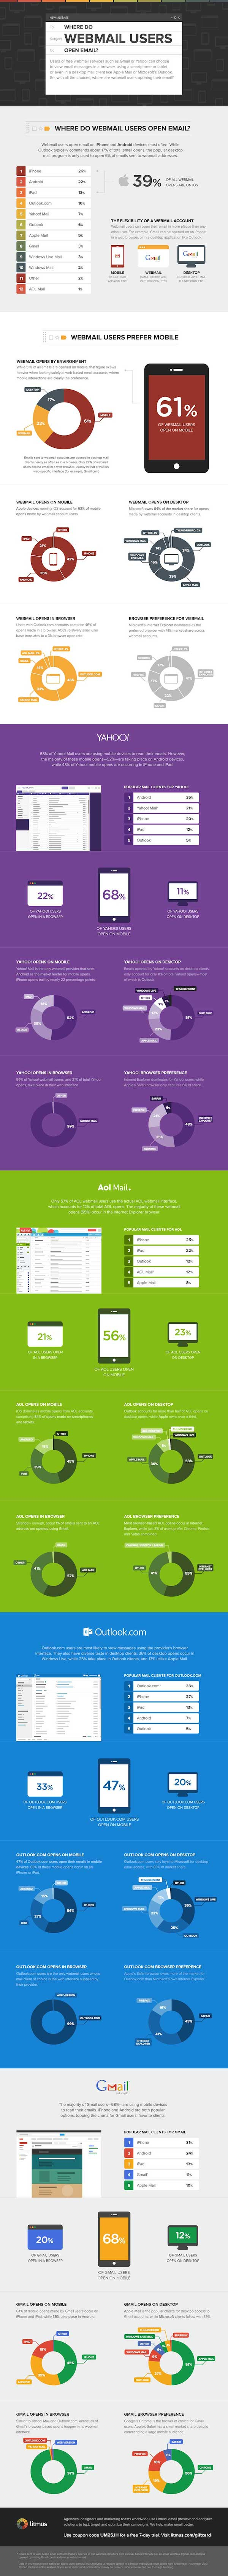 mobile-email-marketing-statistics